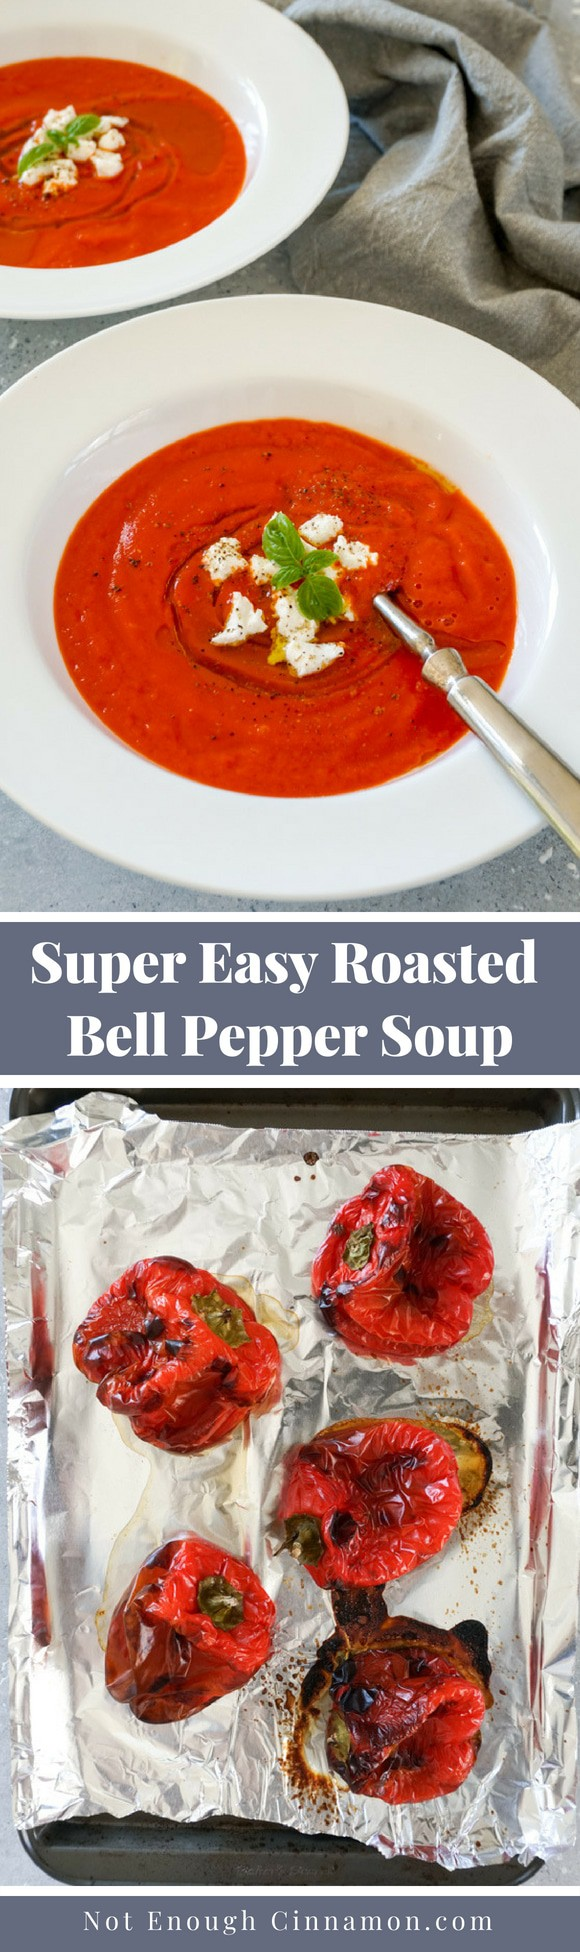 A super easy bell pepper soup made with only 3 ingredients: red bell peppers, roasted in the oven until they are tender, crushed tomatoes and vegetable stock. Recipe on NotEnoughCinnamon.com #cleaneating #easyrecipe #souprecipe #whole30 #whole30recipe #paleo #glutenfree